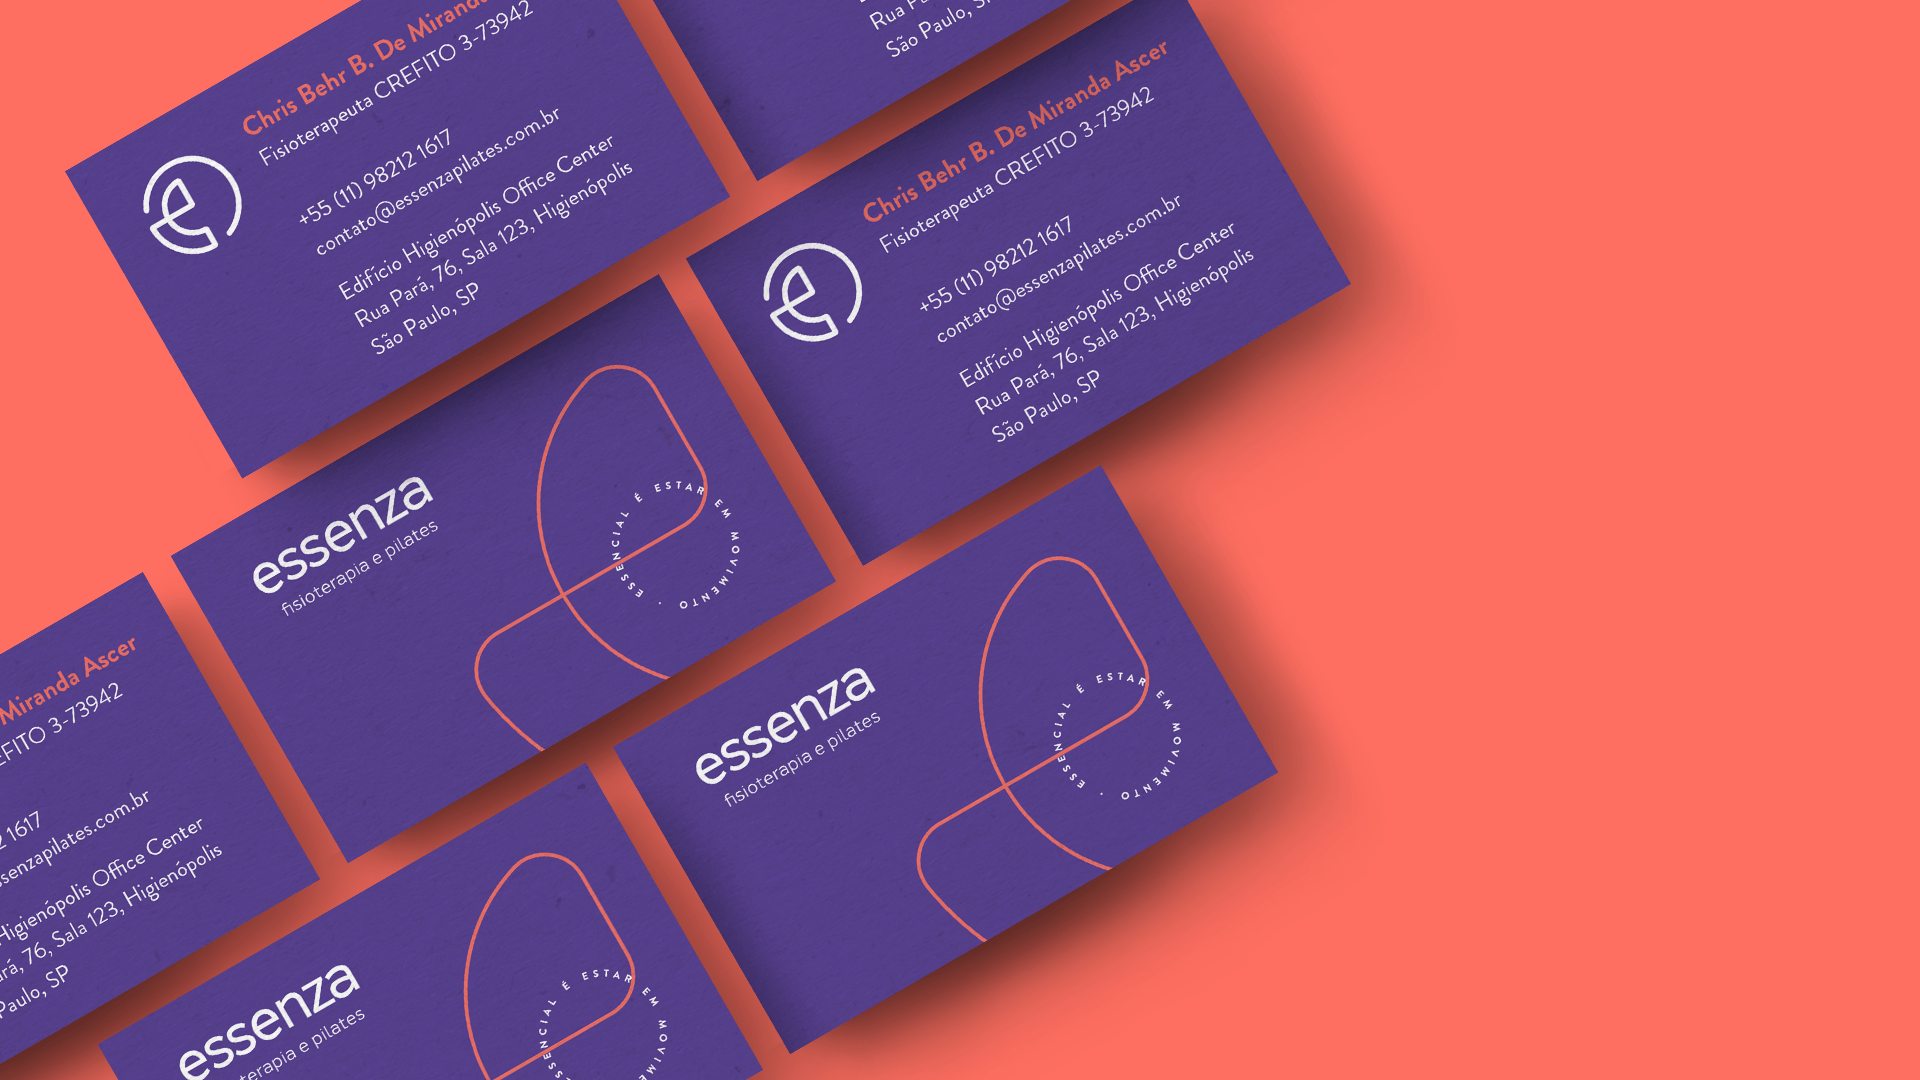 Essenza business cards